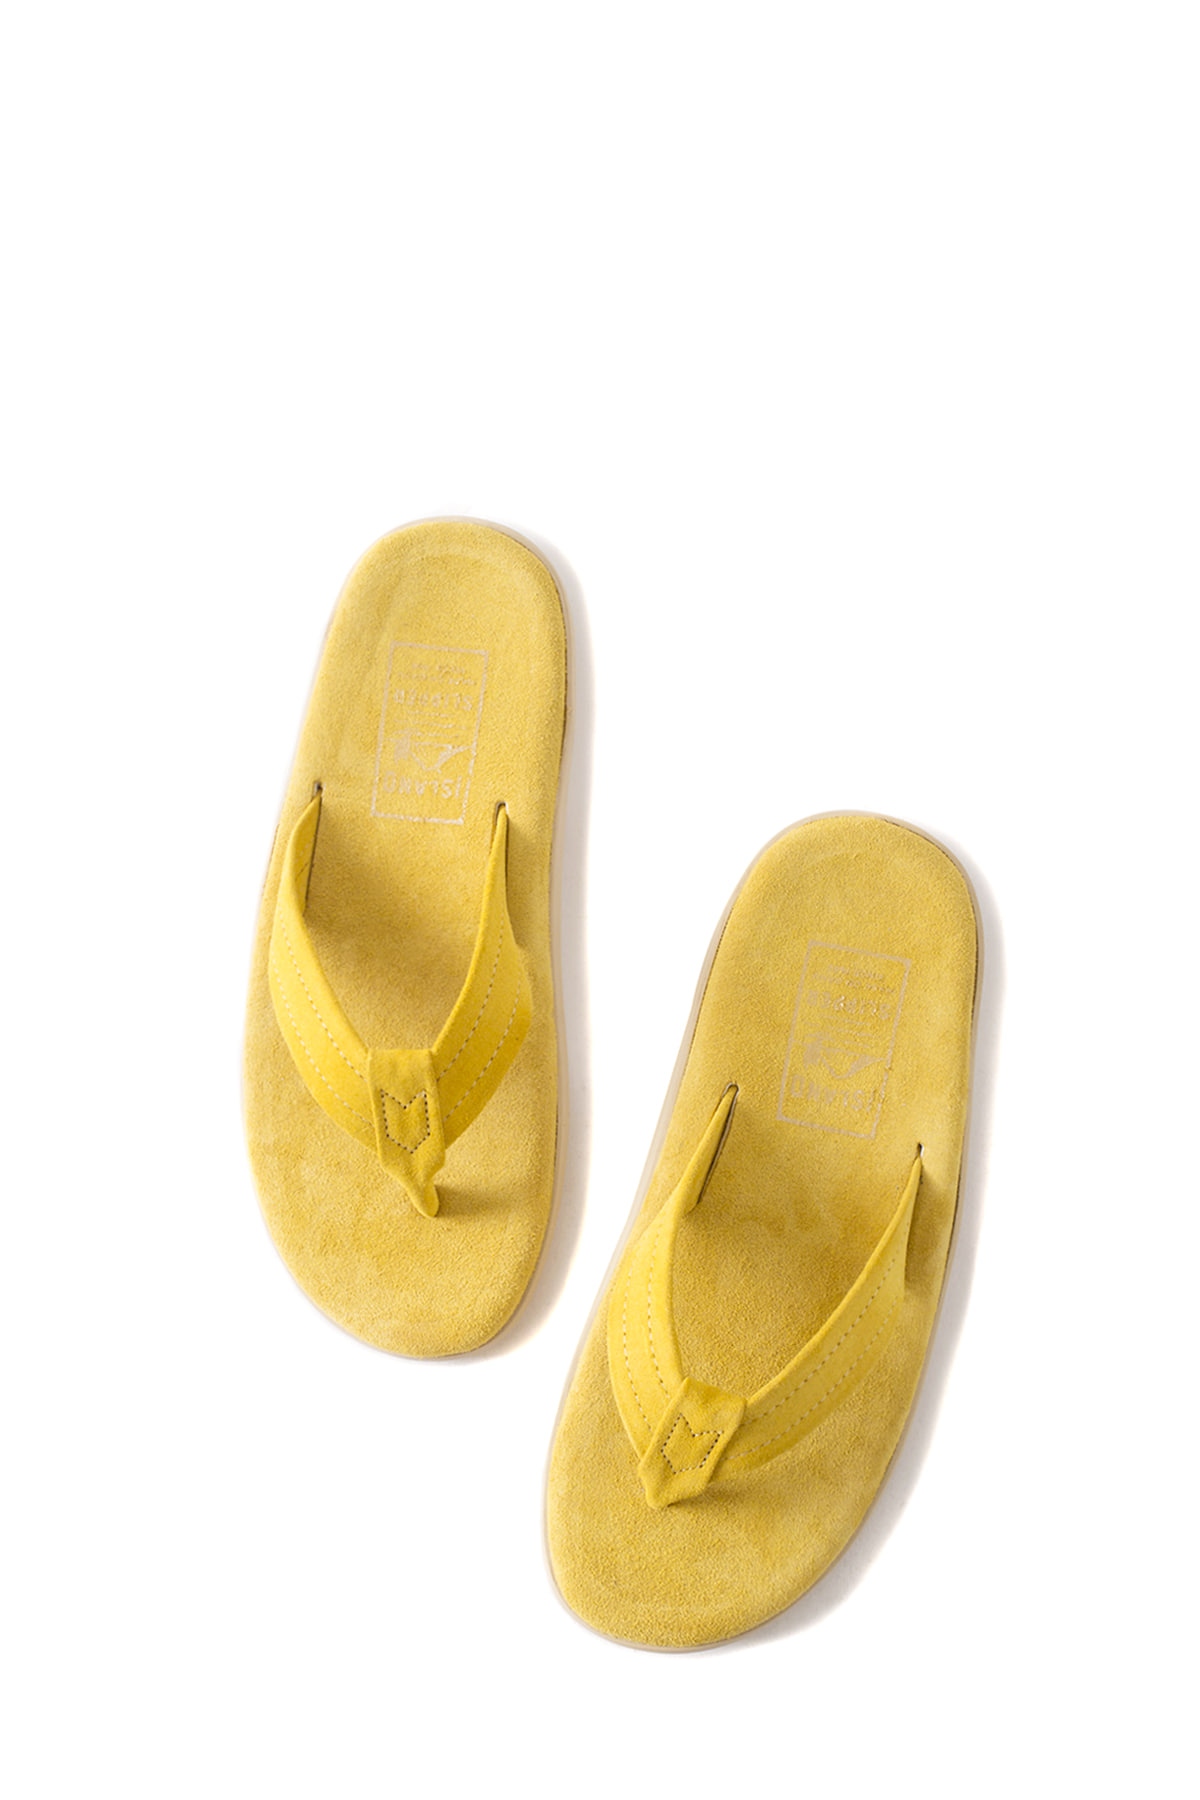 ISLAND SLIPPER : PT203 (Yellow Suede)